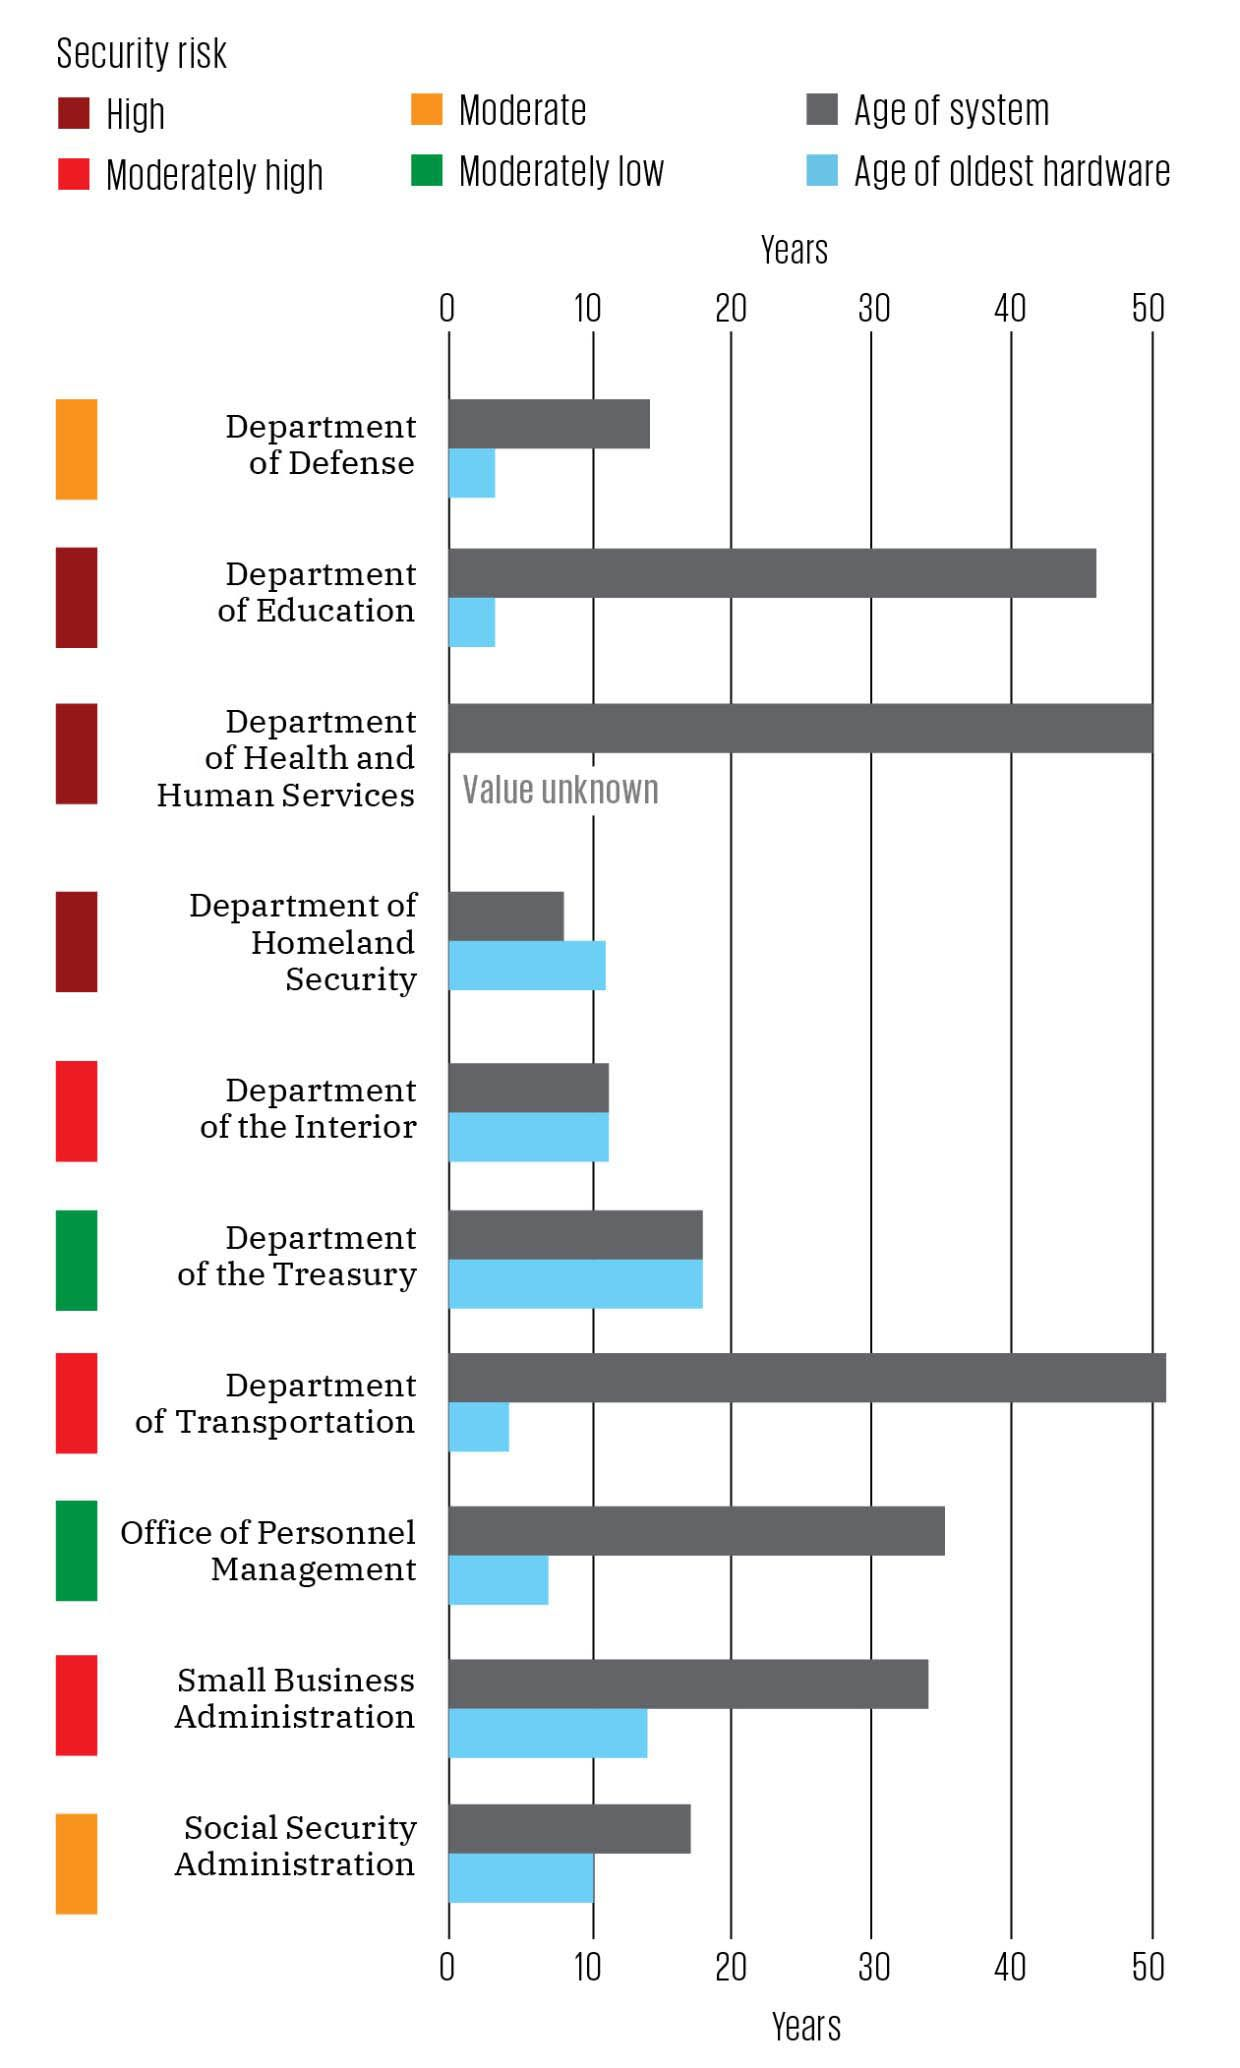 Top 10 U.S. Federal Systems Most In Need of Modernization